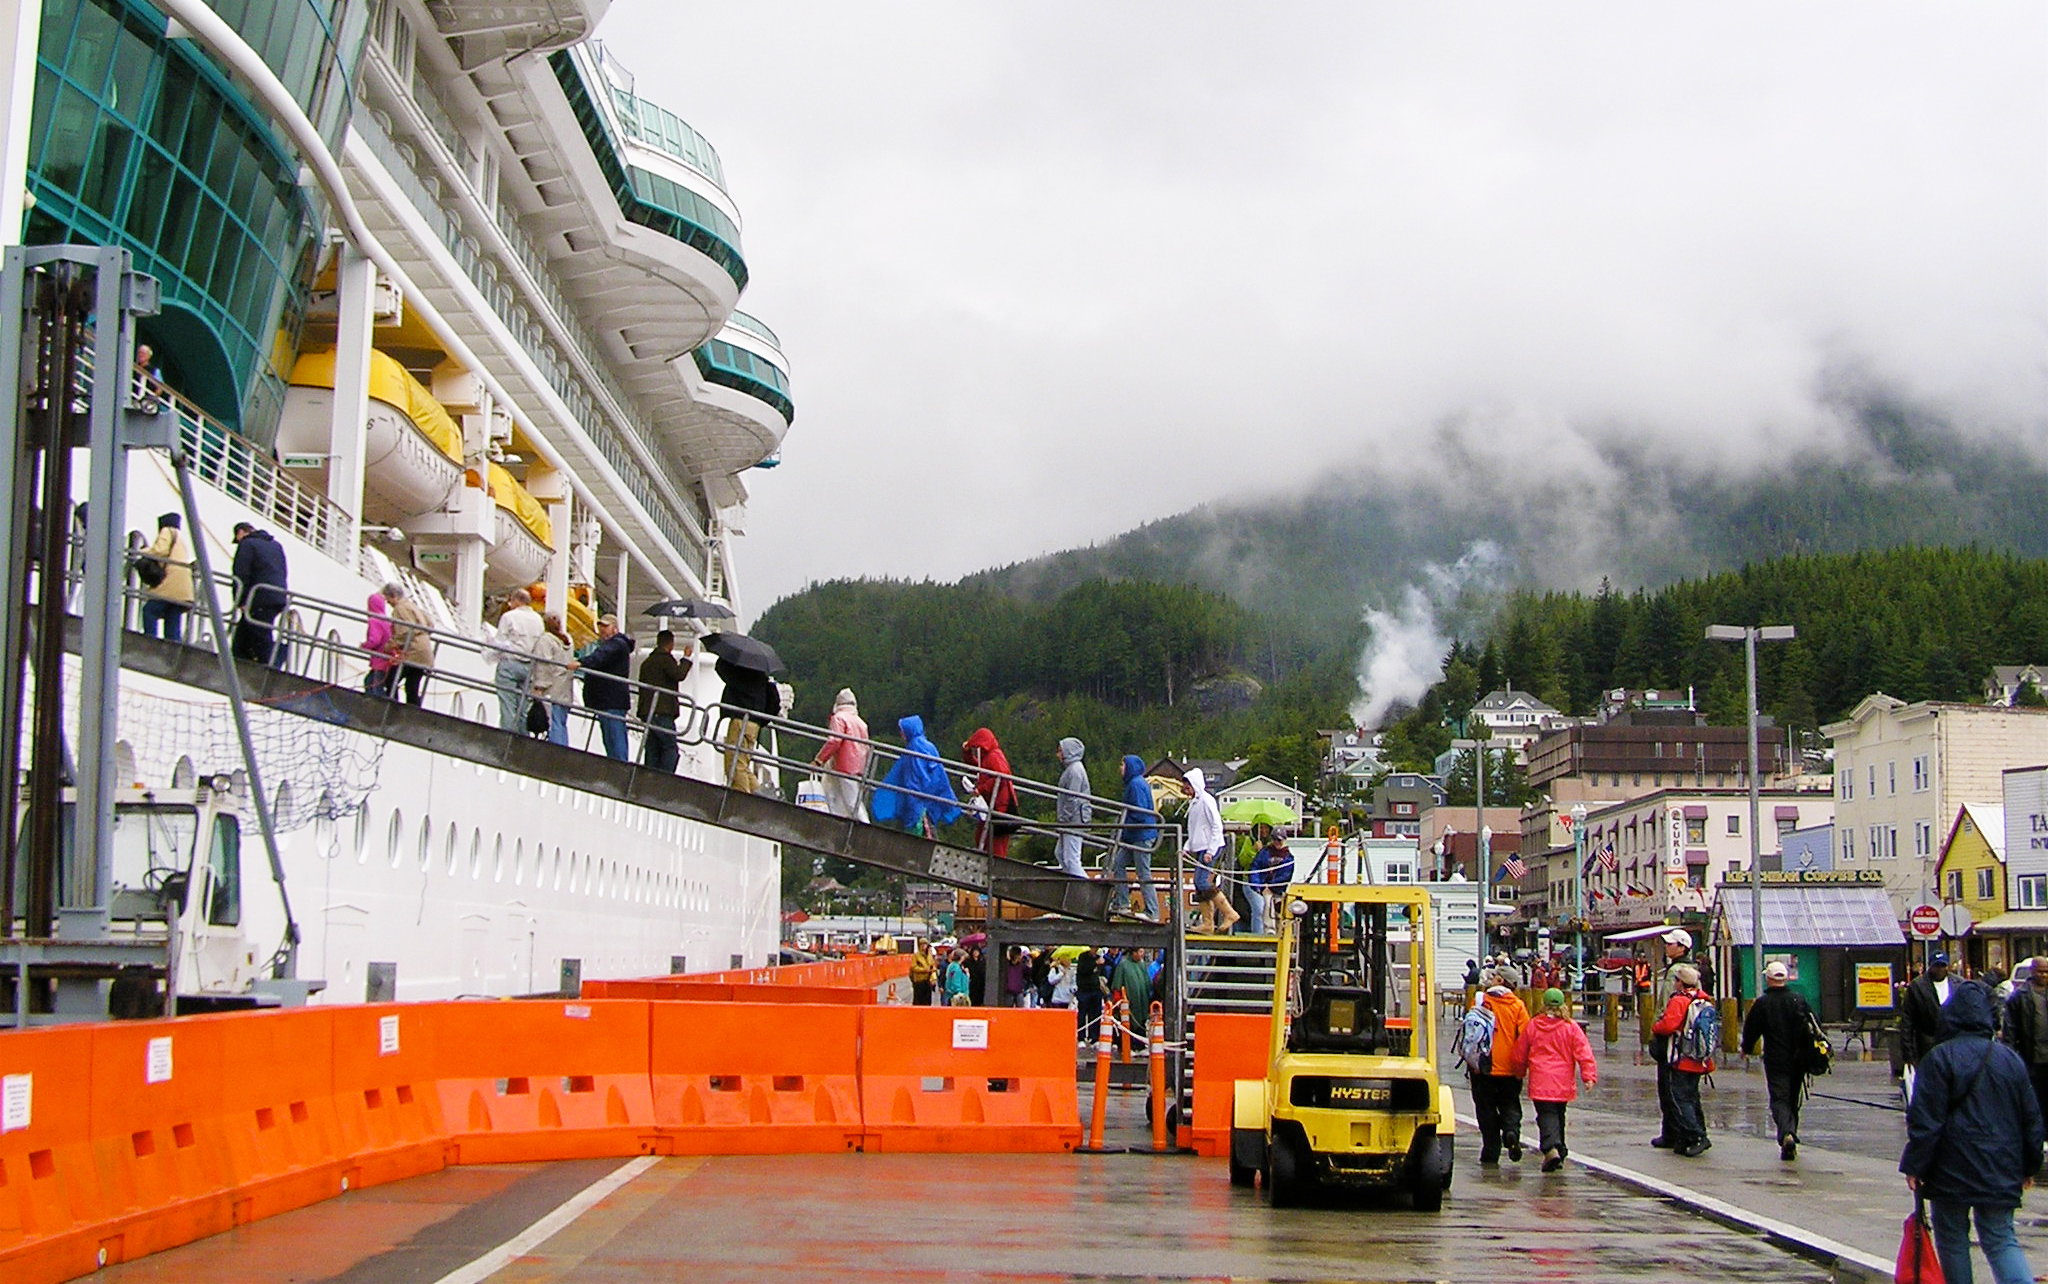 Cruise ships at the dock in Ketchikan, Alaska.